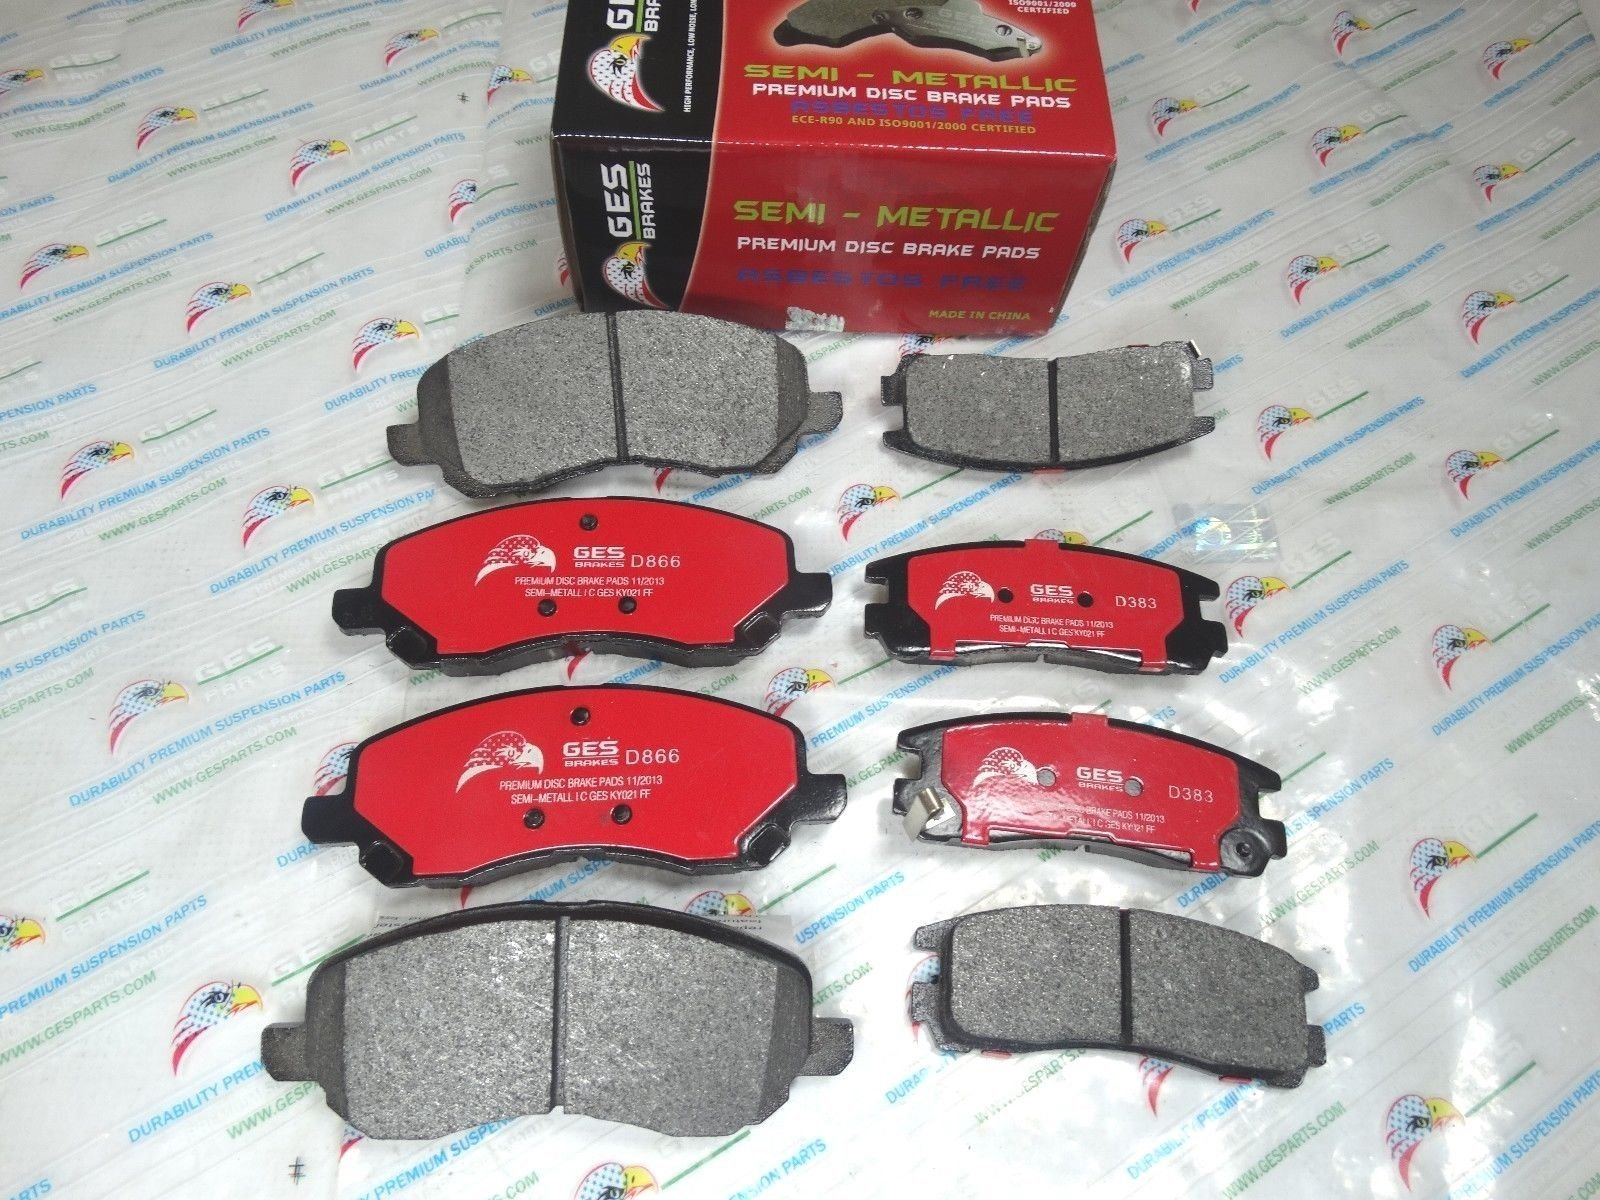 NEW 2 Sets Front & Rear Brake Pads Mitsubishi Eclipse Galant D866 & D383 by GES PARTS (Image #3)